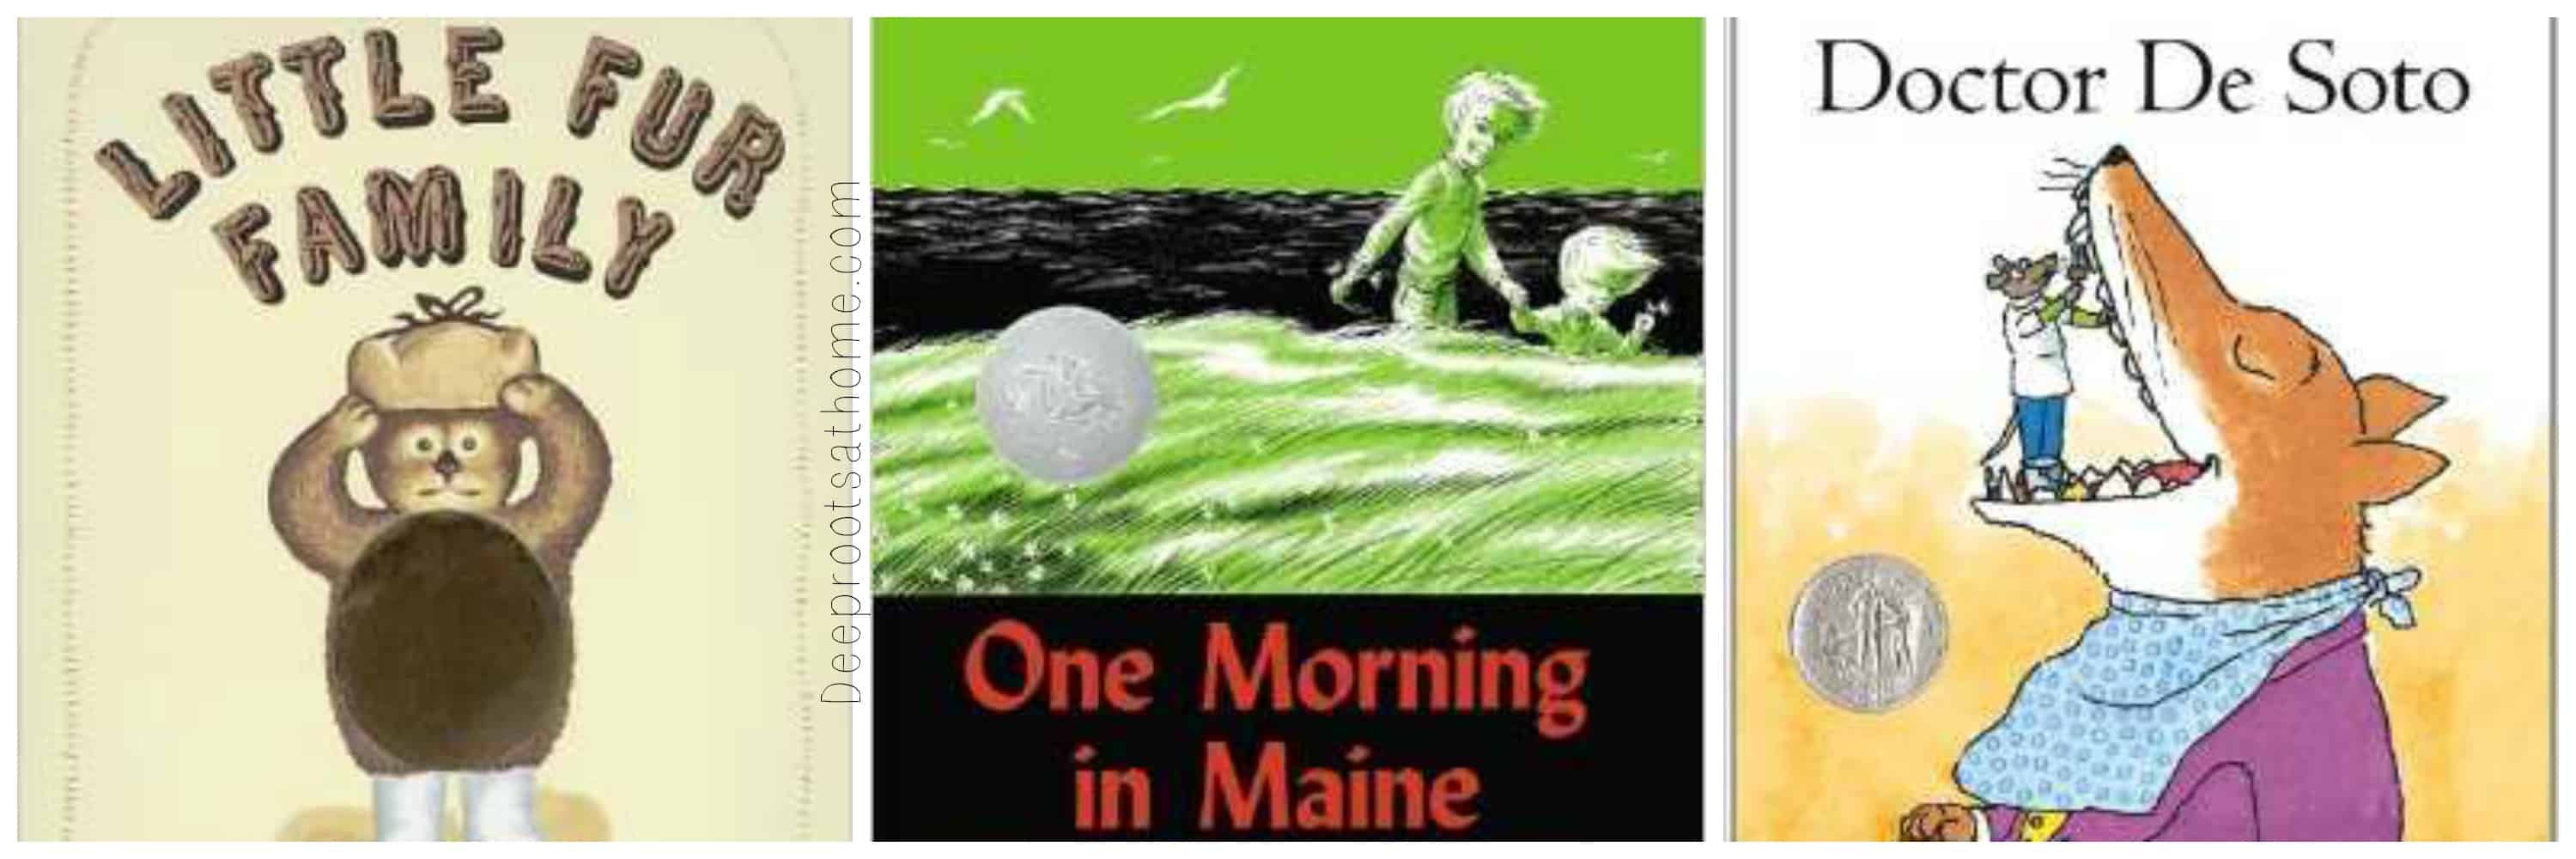 25 Beloved, Time-Tested Read Alouds For Young Children. # books: The Little fur Family, One Morning in Maine, and Doctor De Soto by Robert McCloskey.